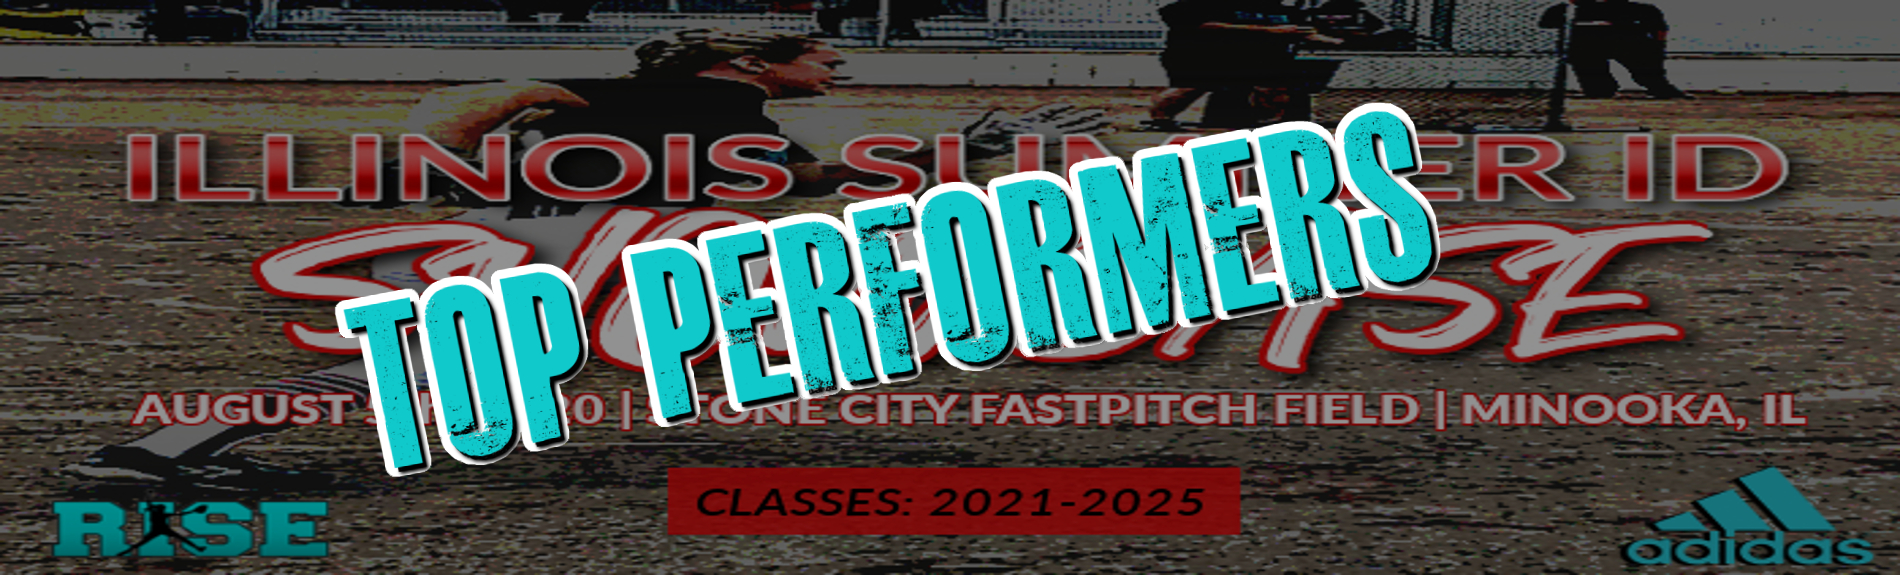 "Illinois Summer ID Showcase ""TOP PERFORMER"""